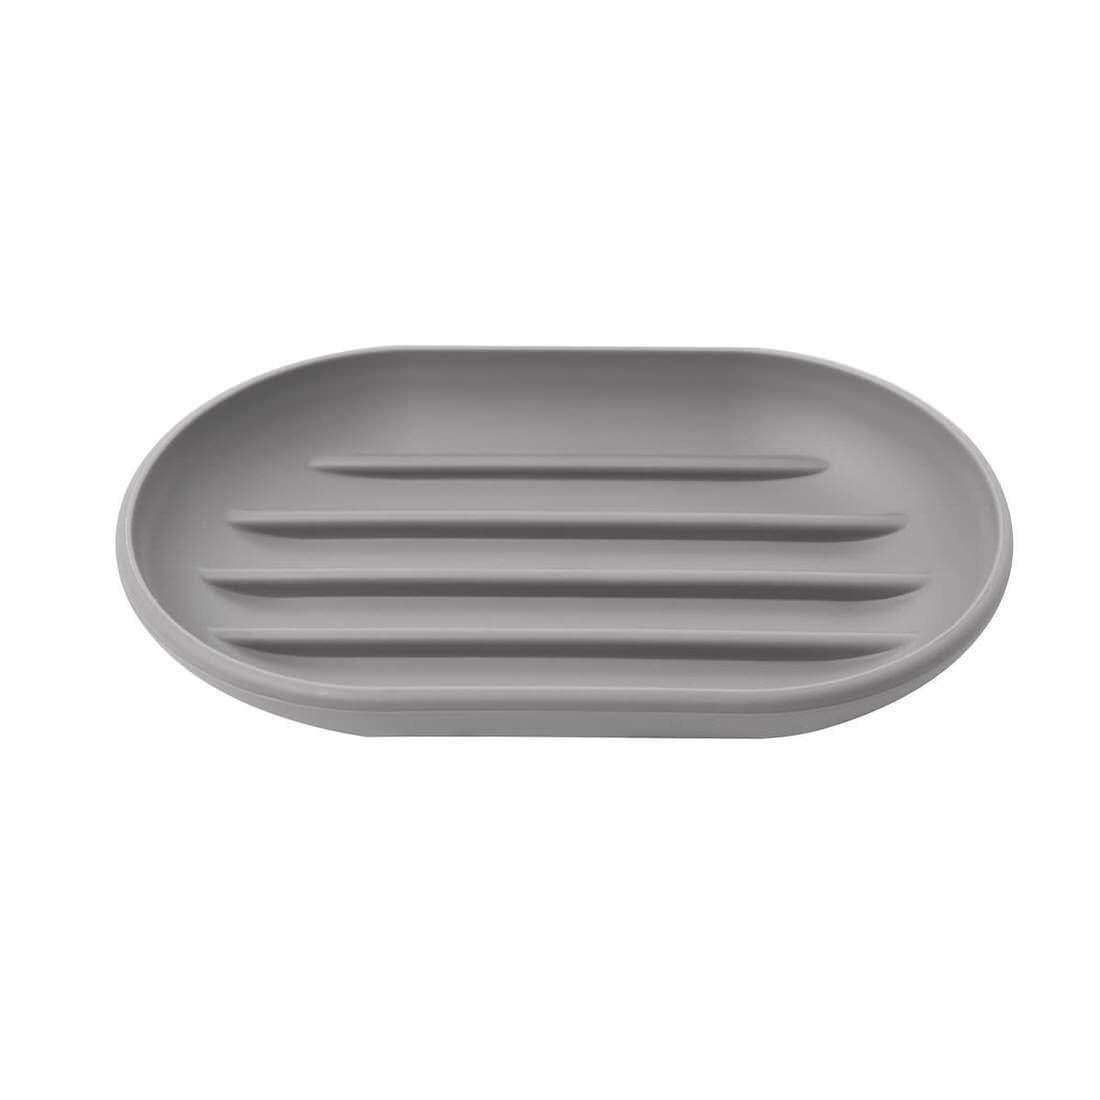 Umbra Touch Soap Dish Grey